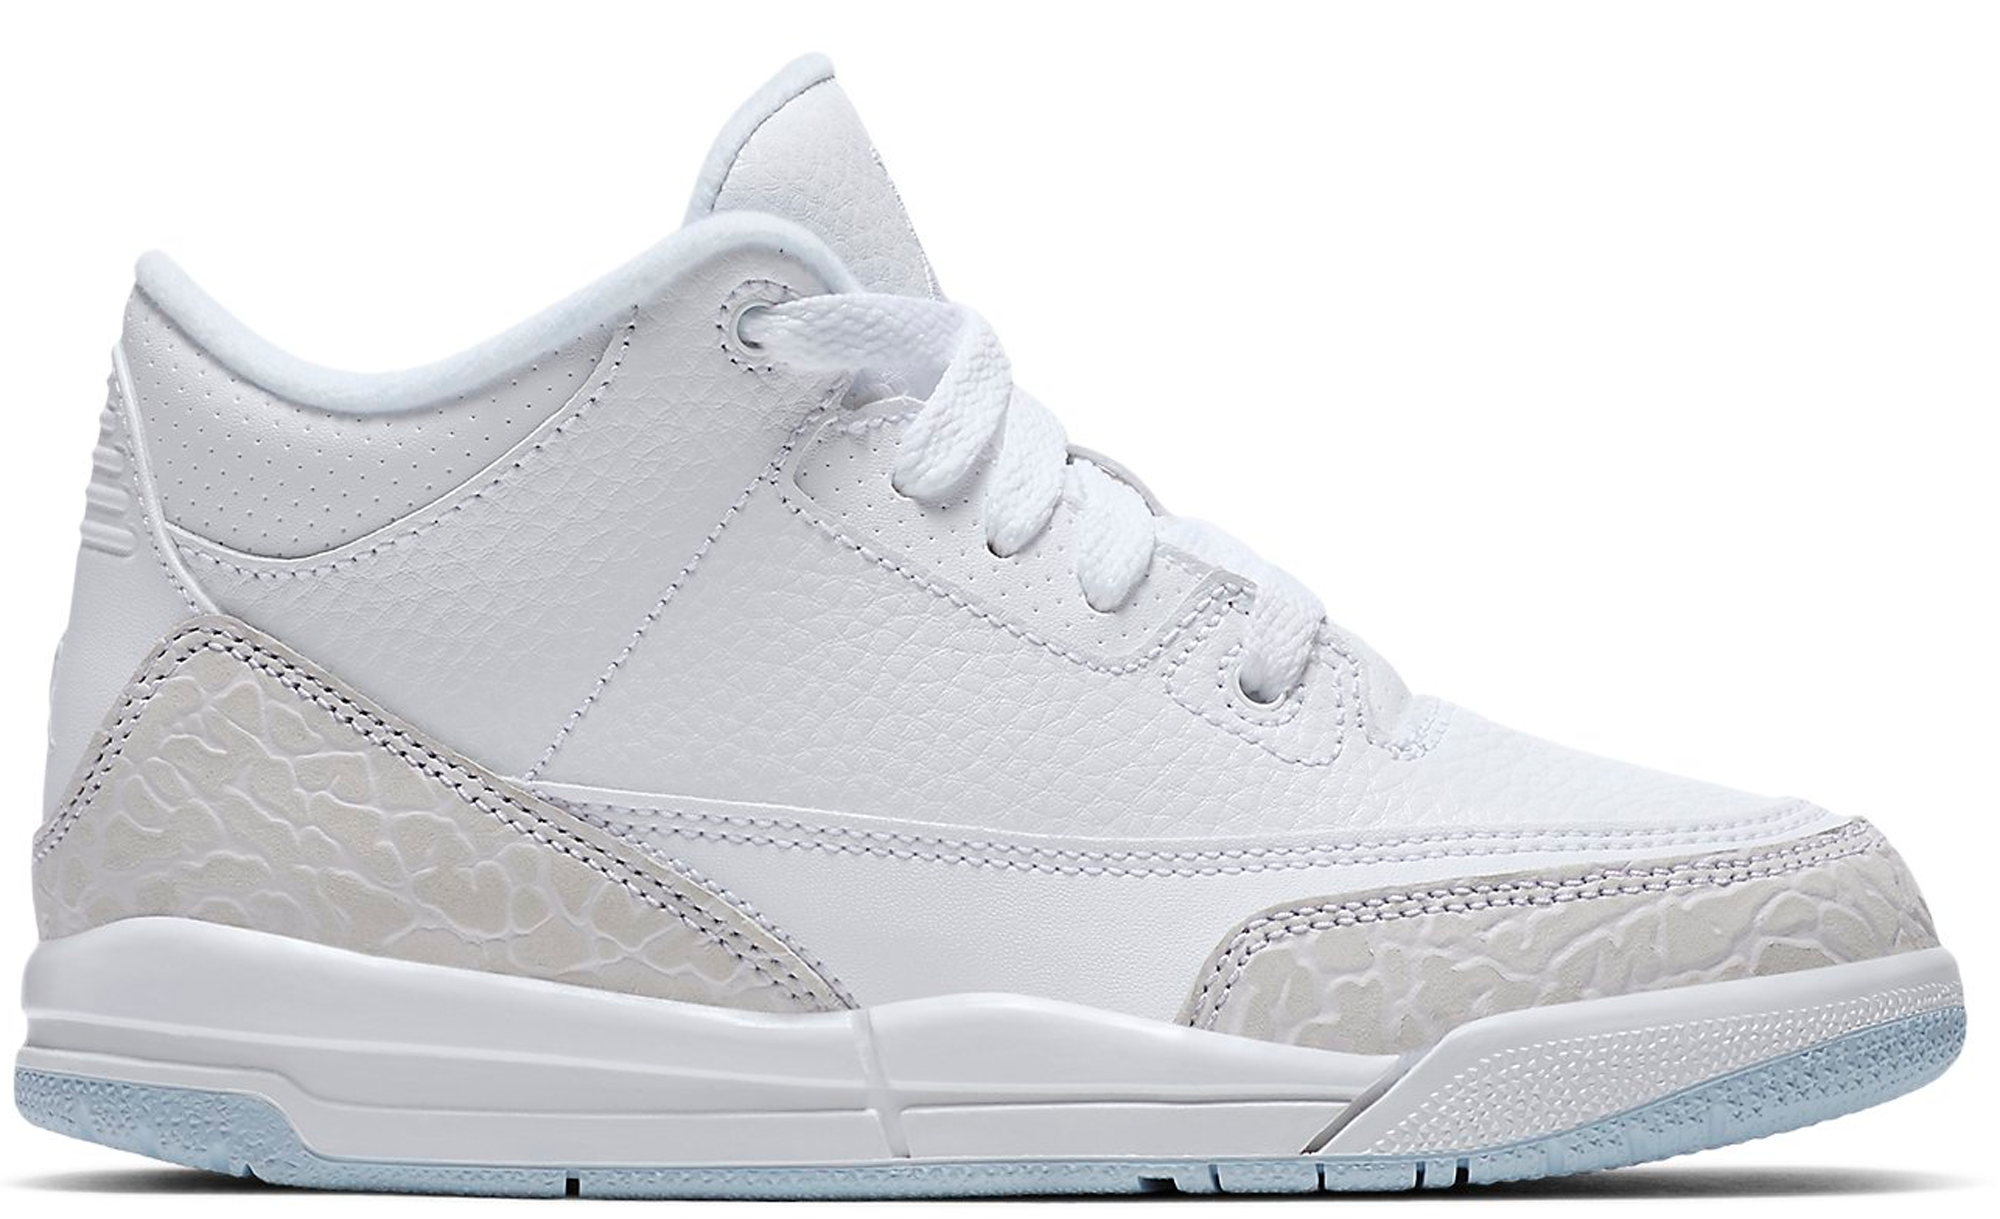 Jordan 3 Retro 